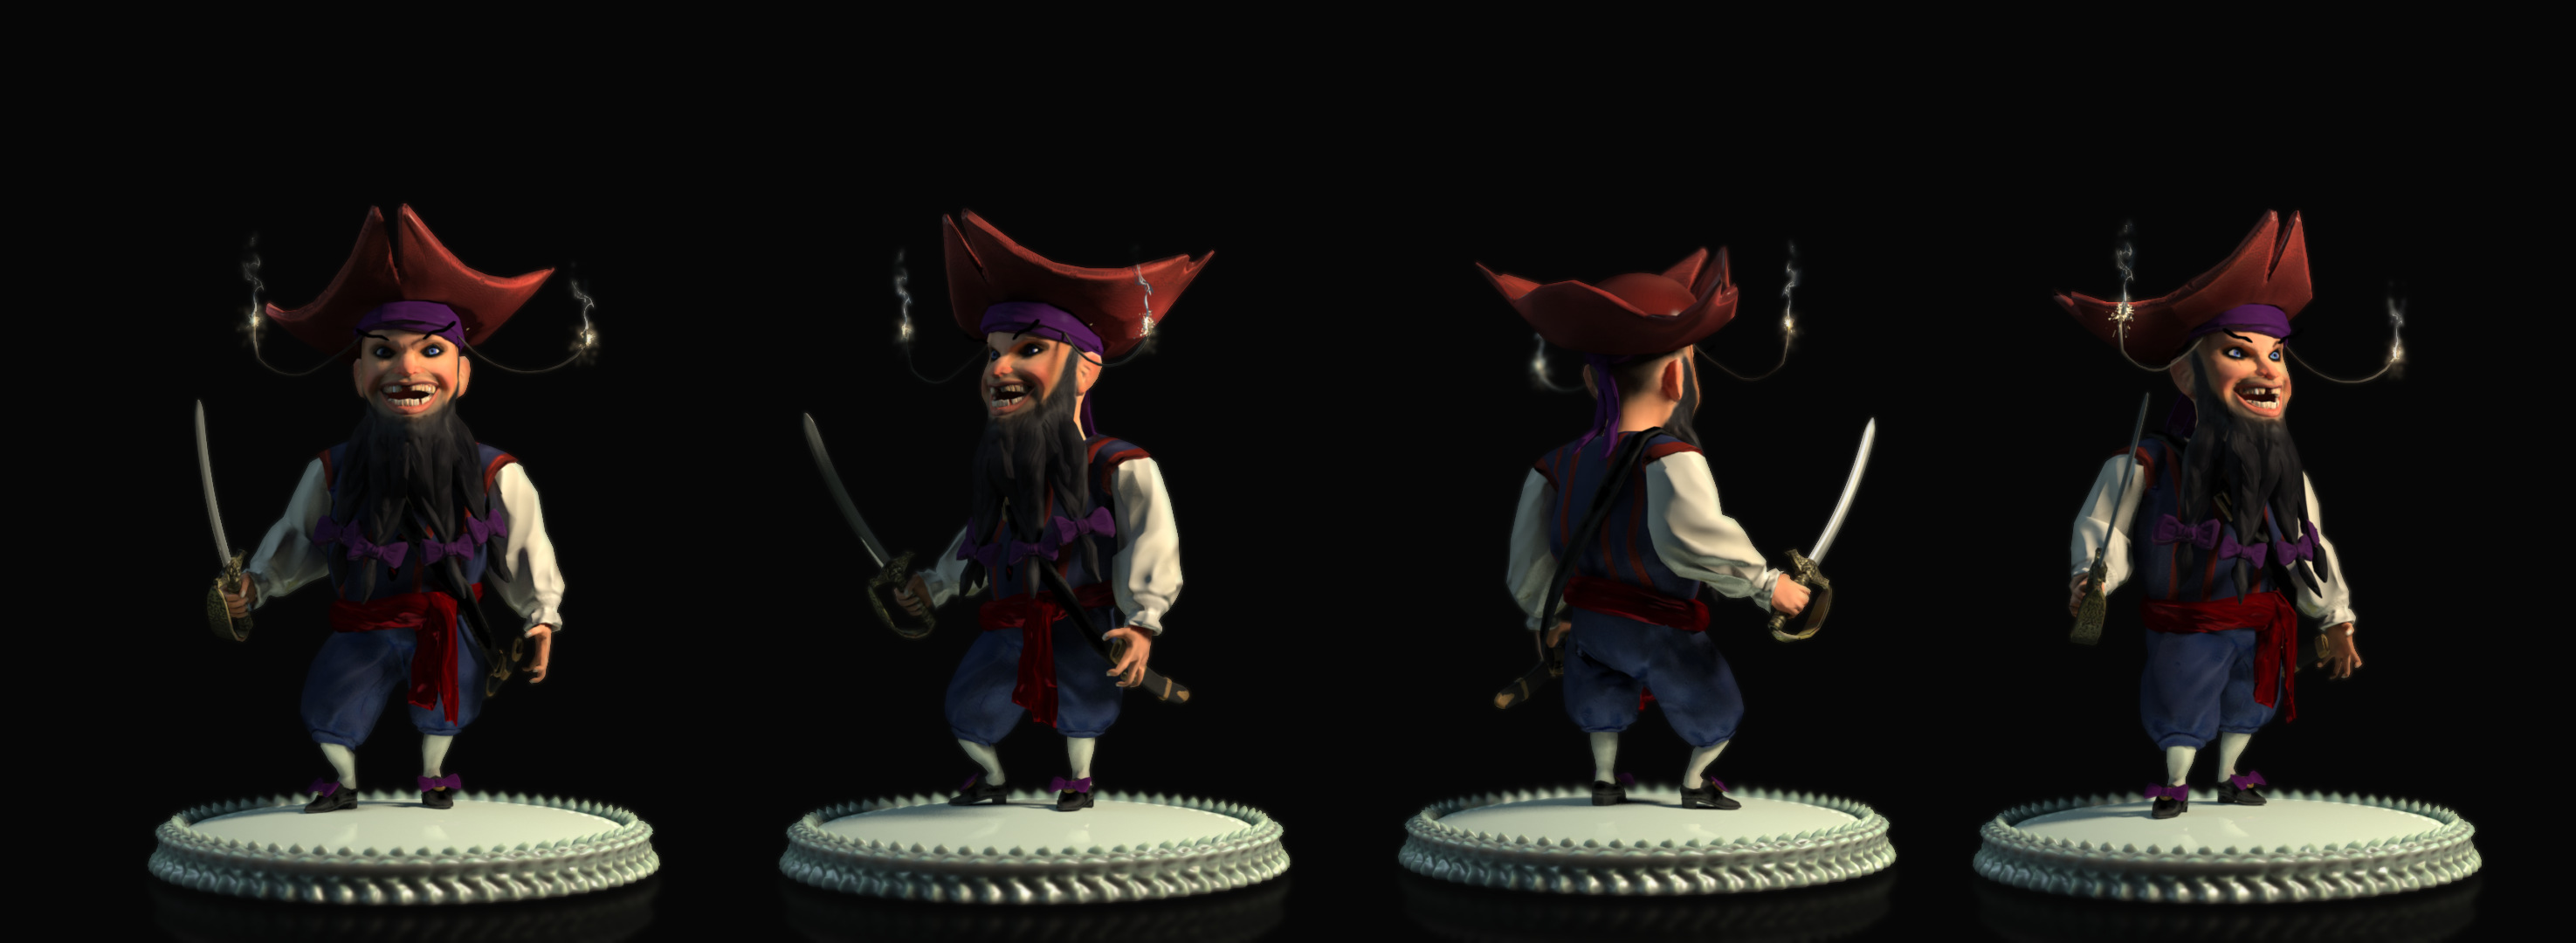 blackbeard_TurnAround_final_01_0000